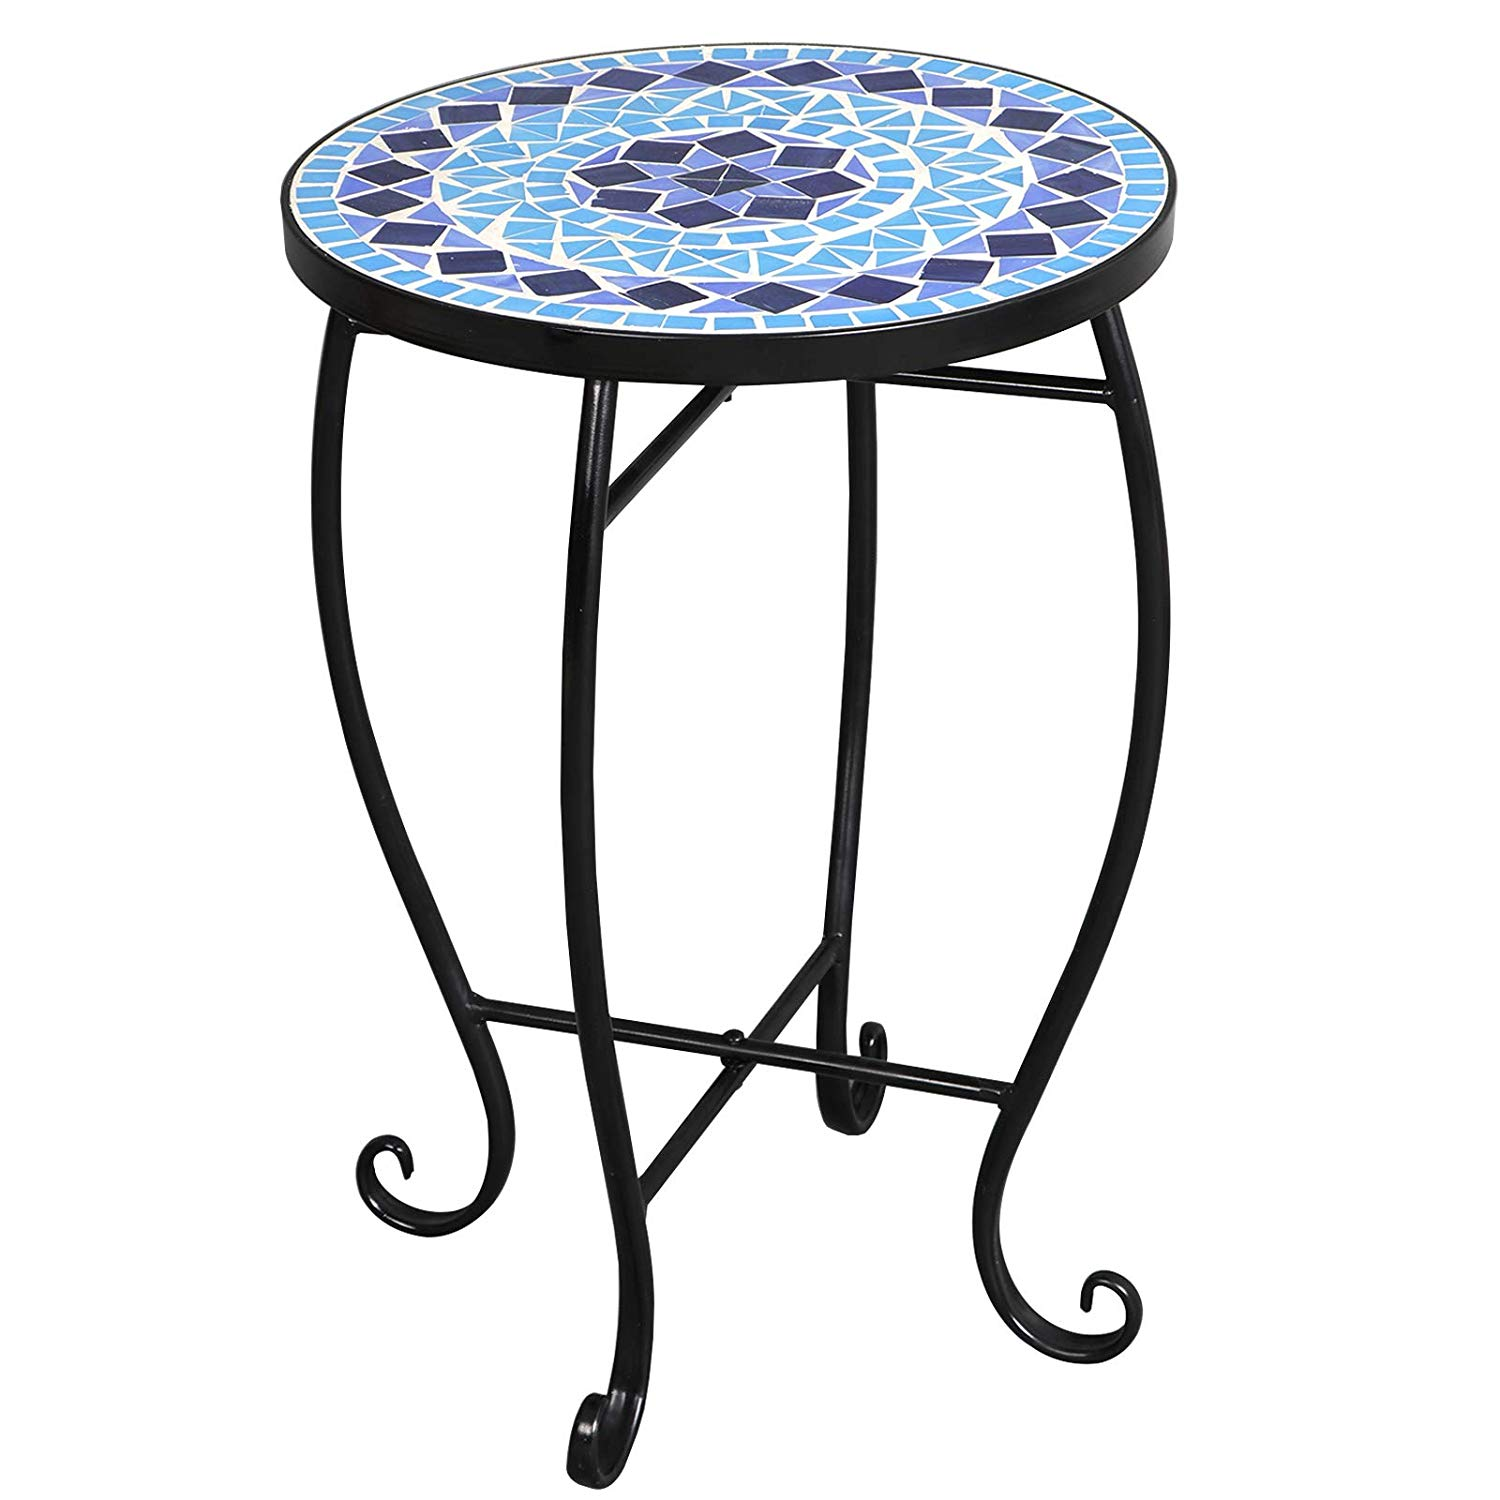 mosaic round side table plant stand floor flower pots accent indoor rack planter holder decor potted containers shelf display for home patio garden outdoor iron grey kitchen